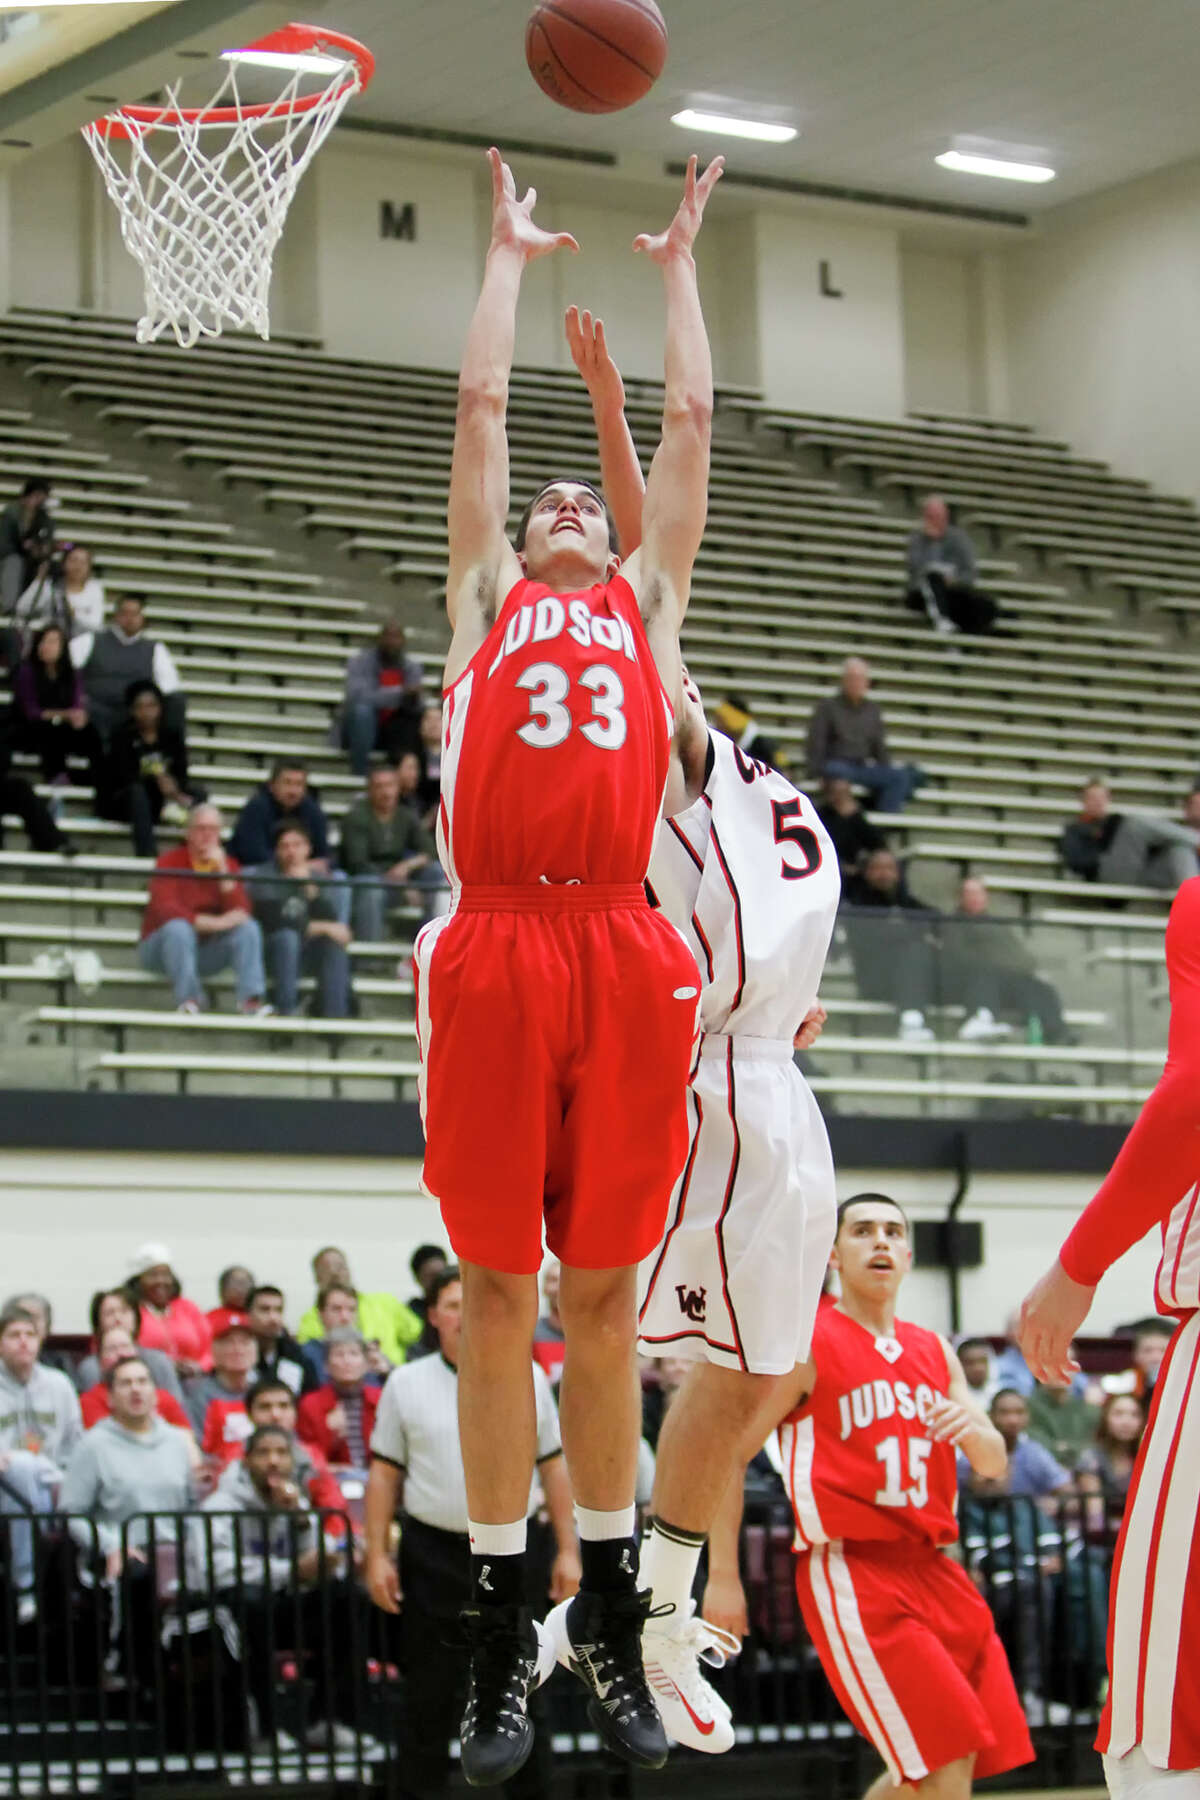 Judson's David Wacker (left) stretches for a rebound over Churchill's Braeden Bernstein during the first half of their game at Littleton Gym on Tuesday, Dec. 10, 2013. Judson beat the Chargers 58-55. MARVIN PFEIFFER/ mpfeiffer@express-news.net